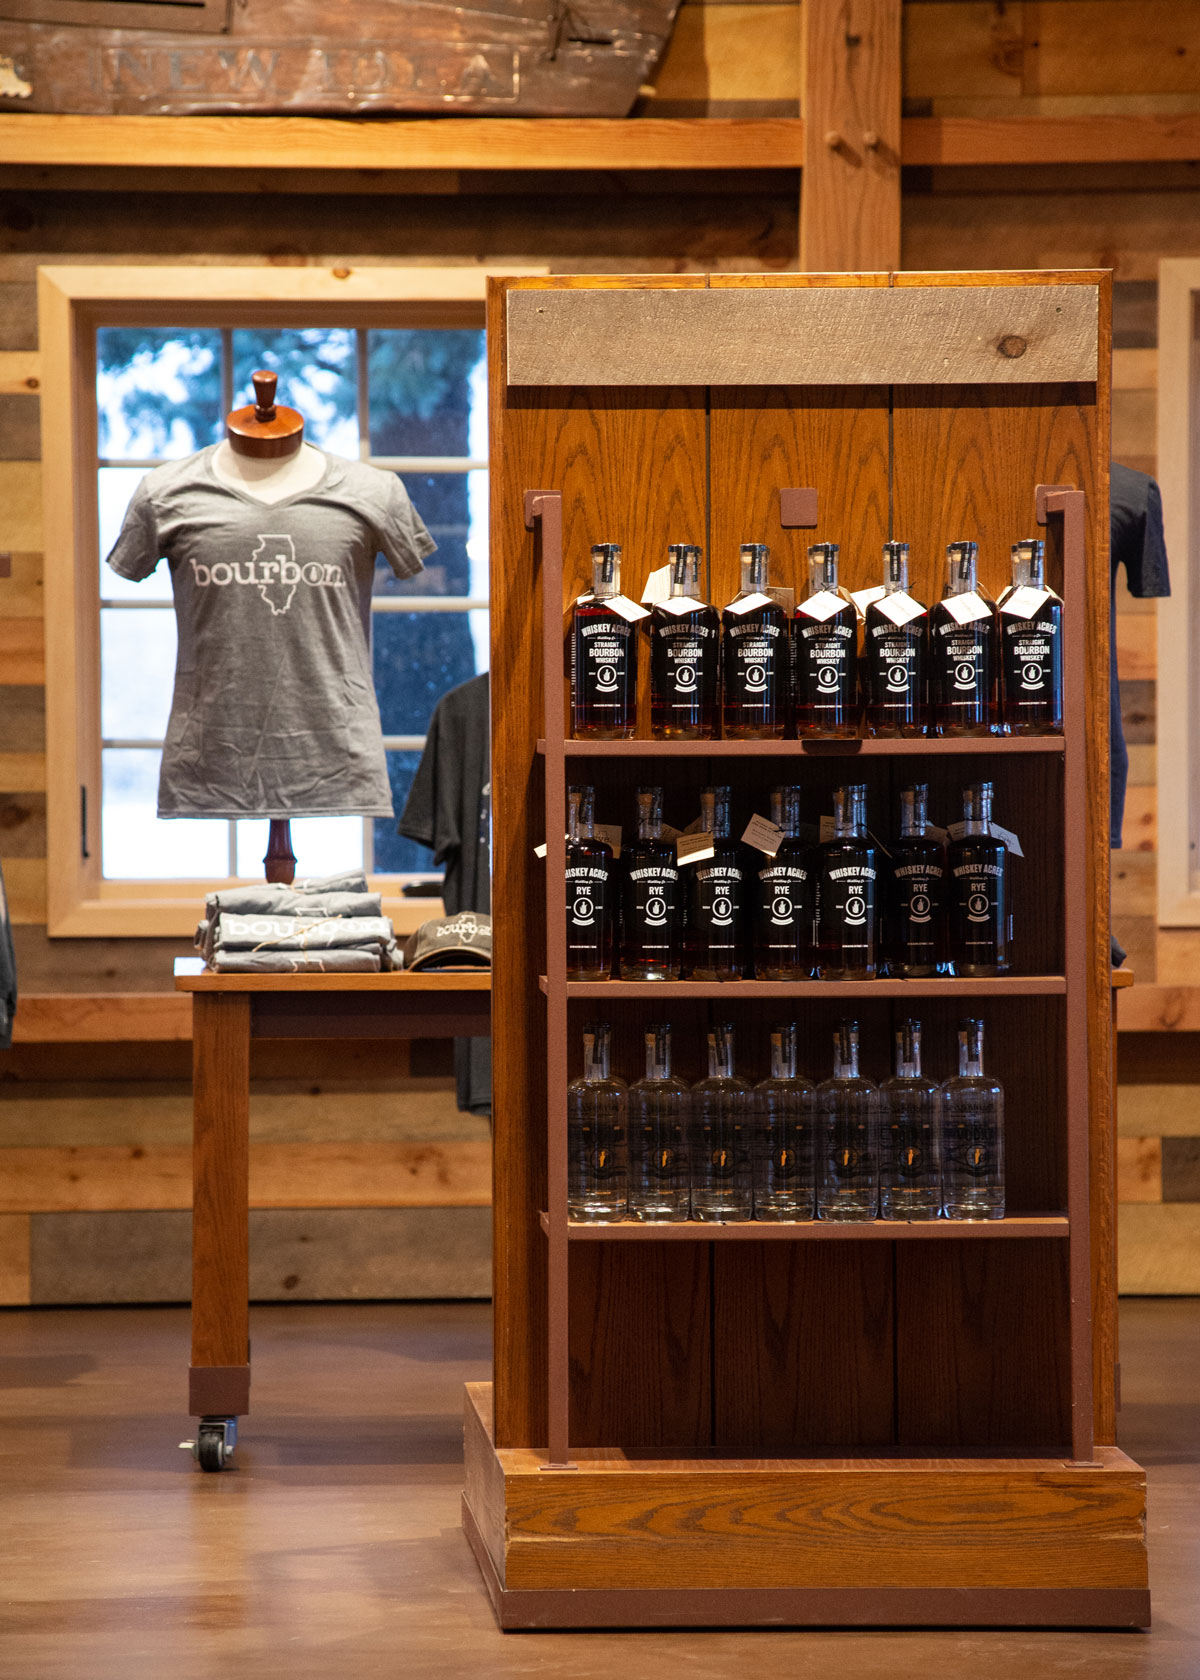 whiskey acres gift options, a t-shirt and whiskey